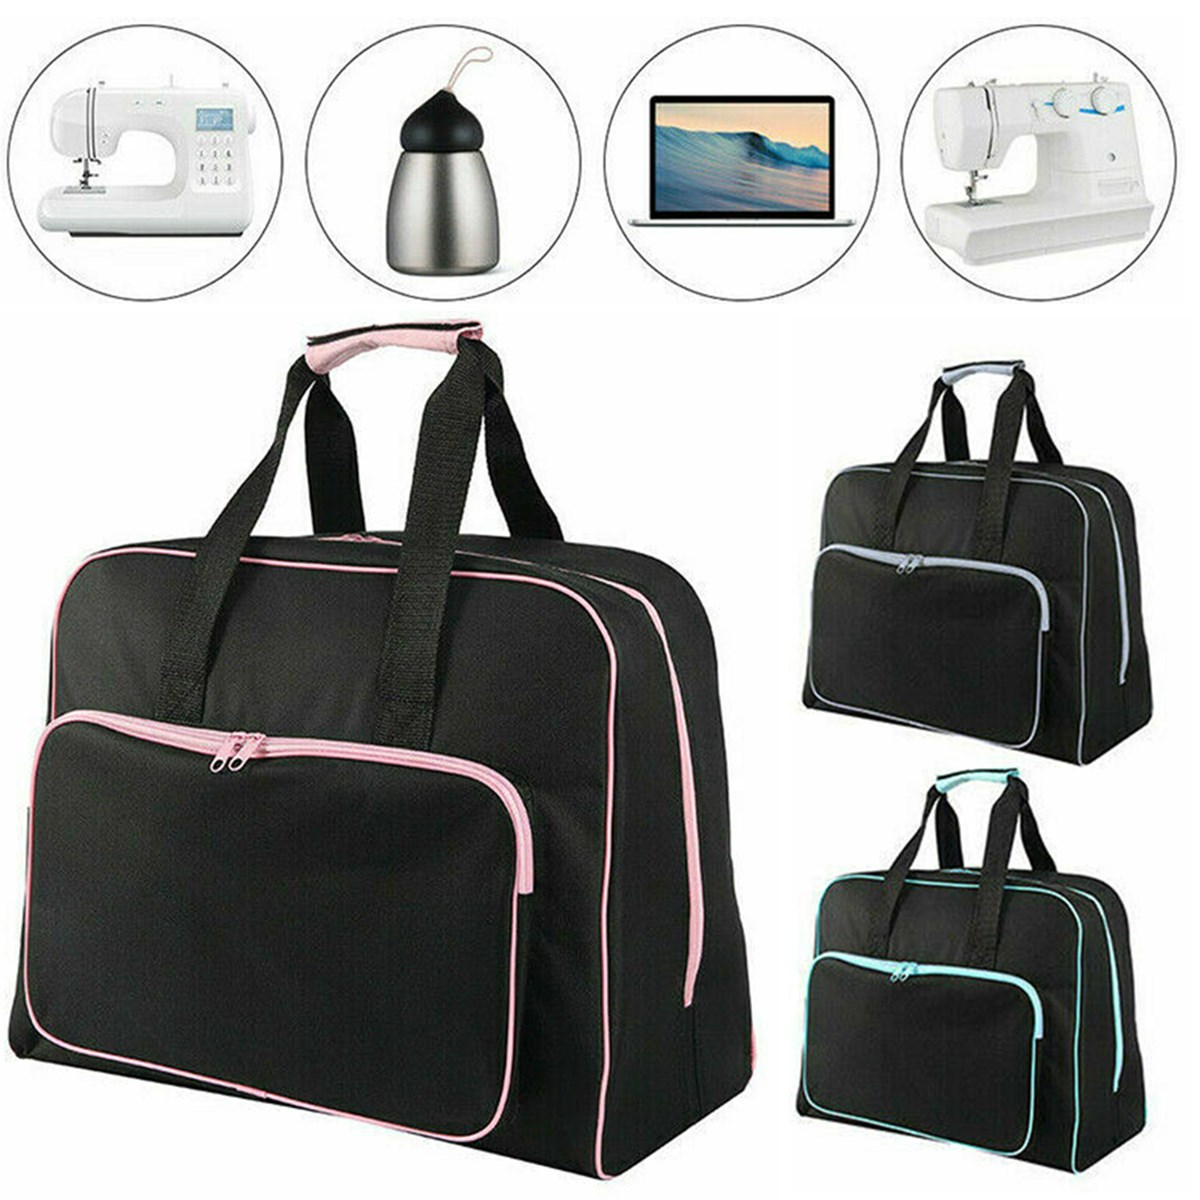 Unisex Large Capacity Sewing Machine Bag Travel Portable Storage Bag Waterproof Tote Bags Multifunctional Sewing Tools HandBag